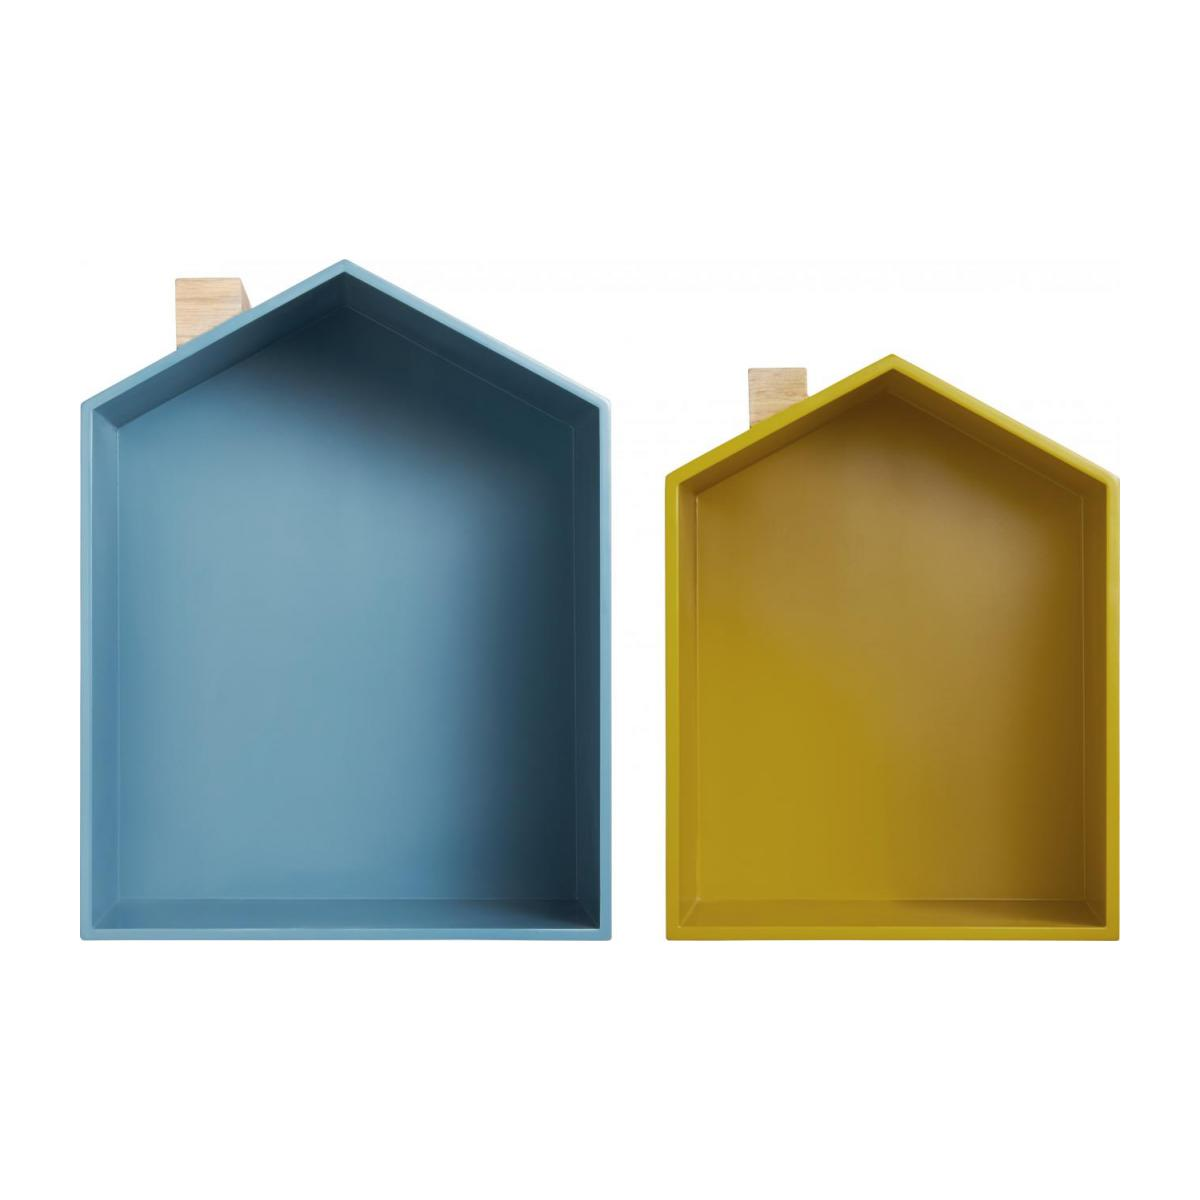 Set of 2 shelves made of oak, natural, grey-blue and yellow n°4